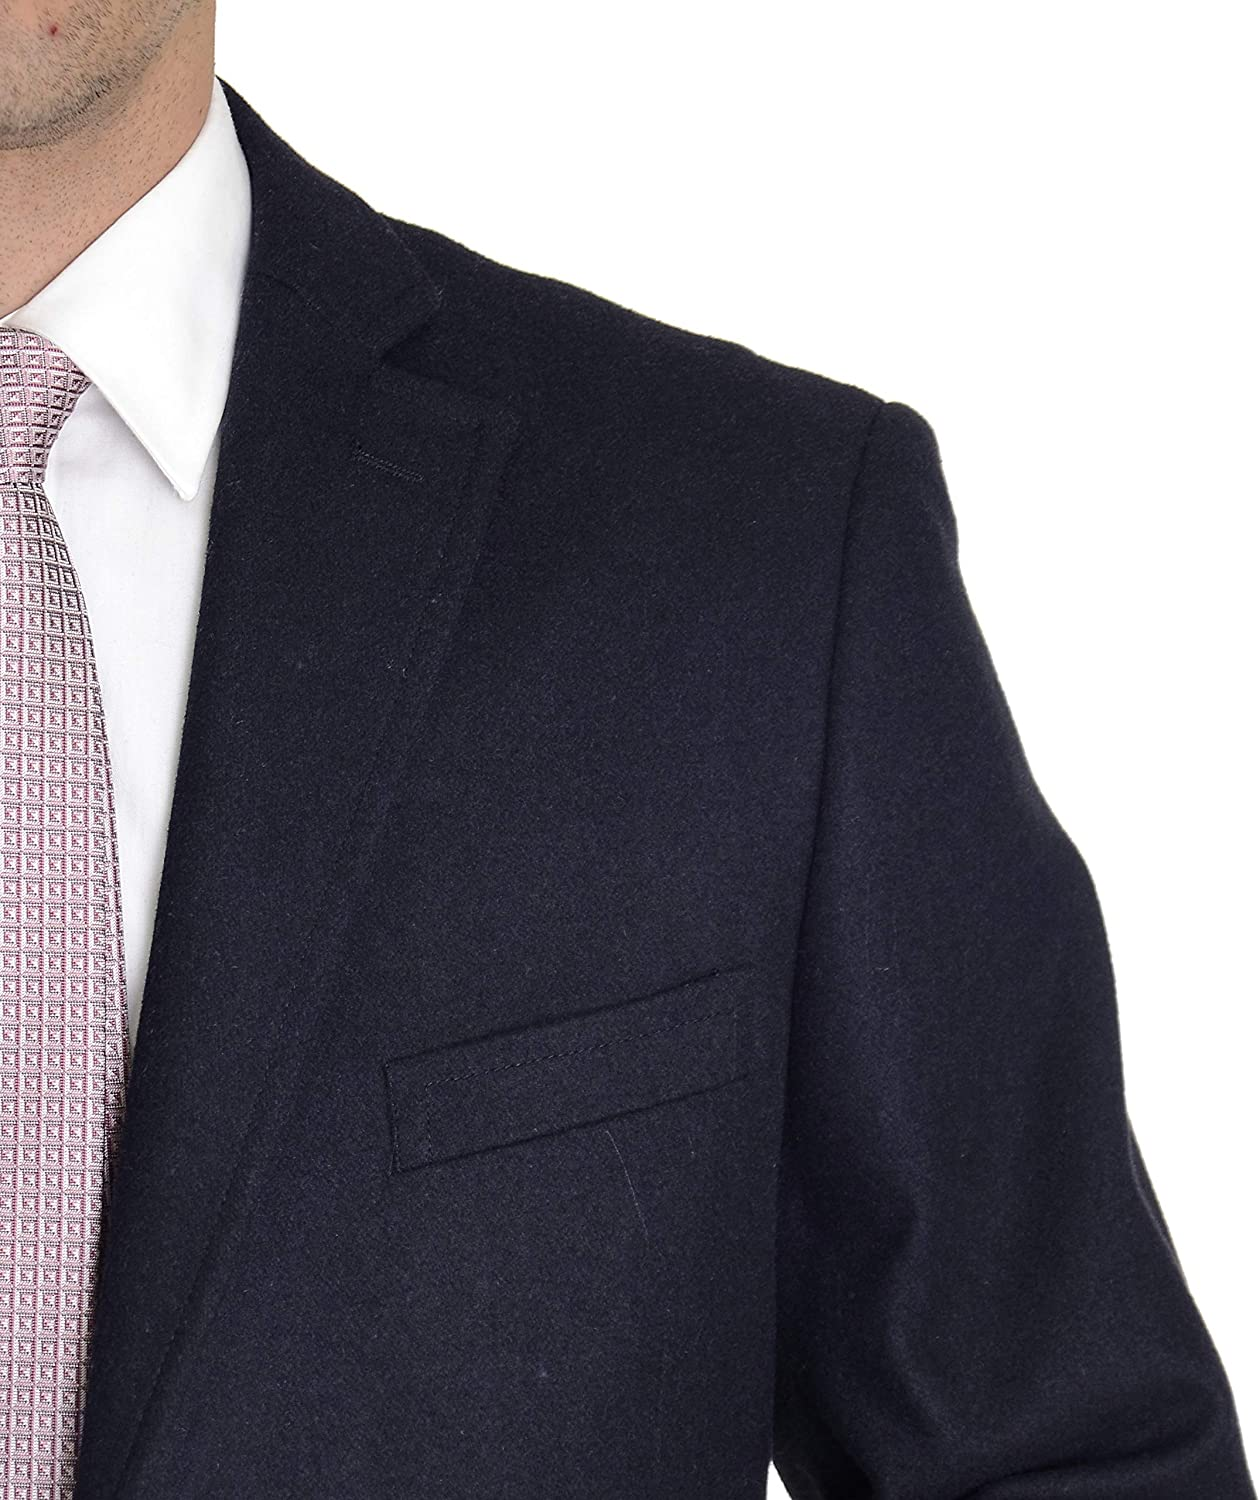 The Suit Depot Mens Wool Cashmere Single Breasted 3//4 Length Top Coat Overcoat